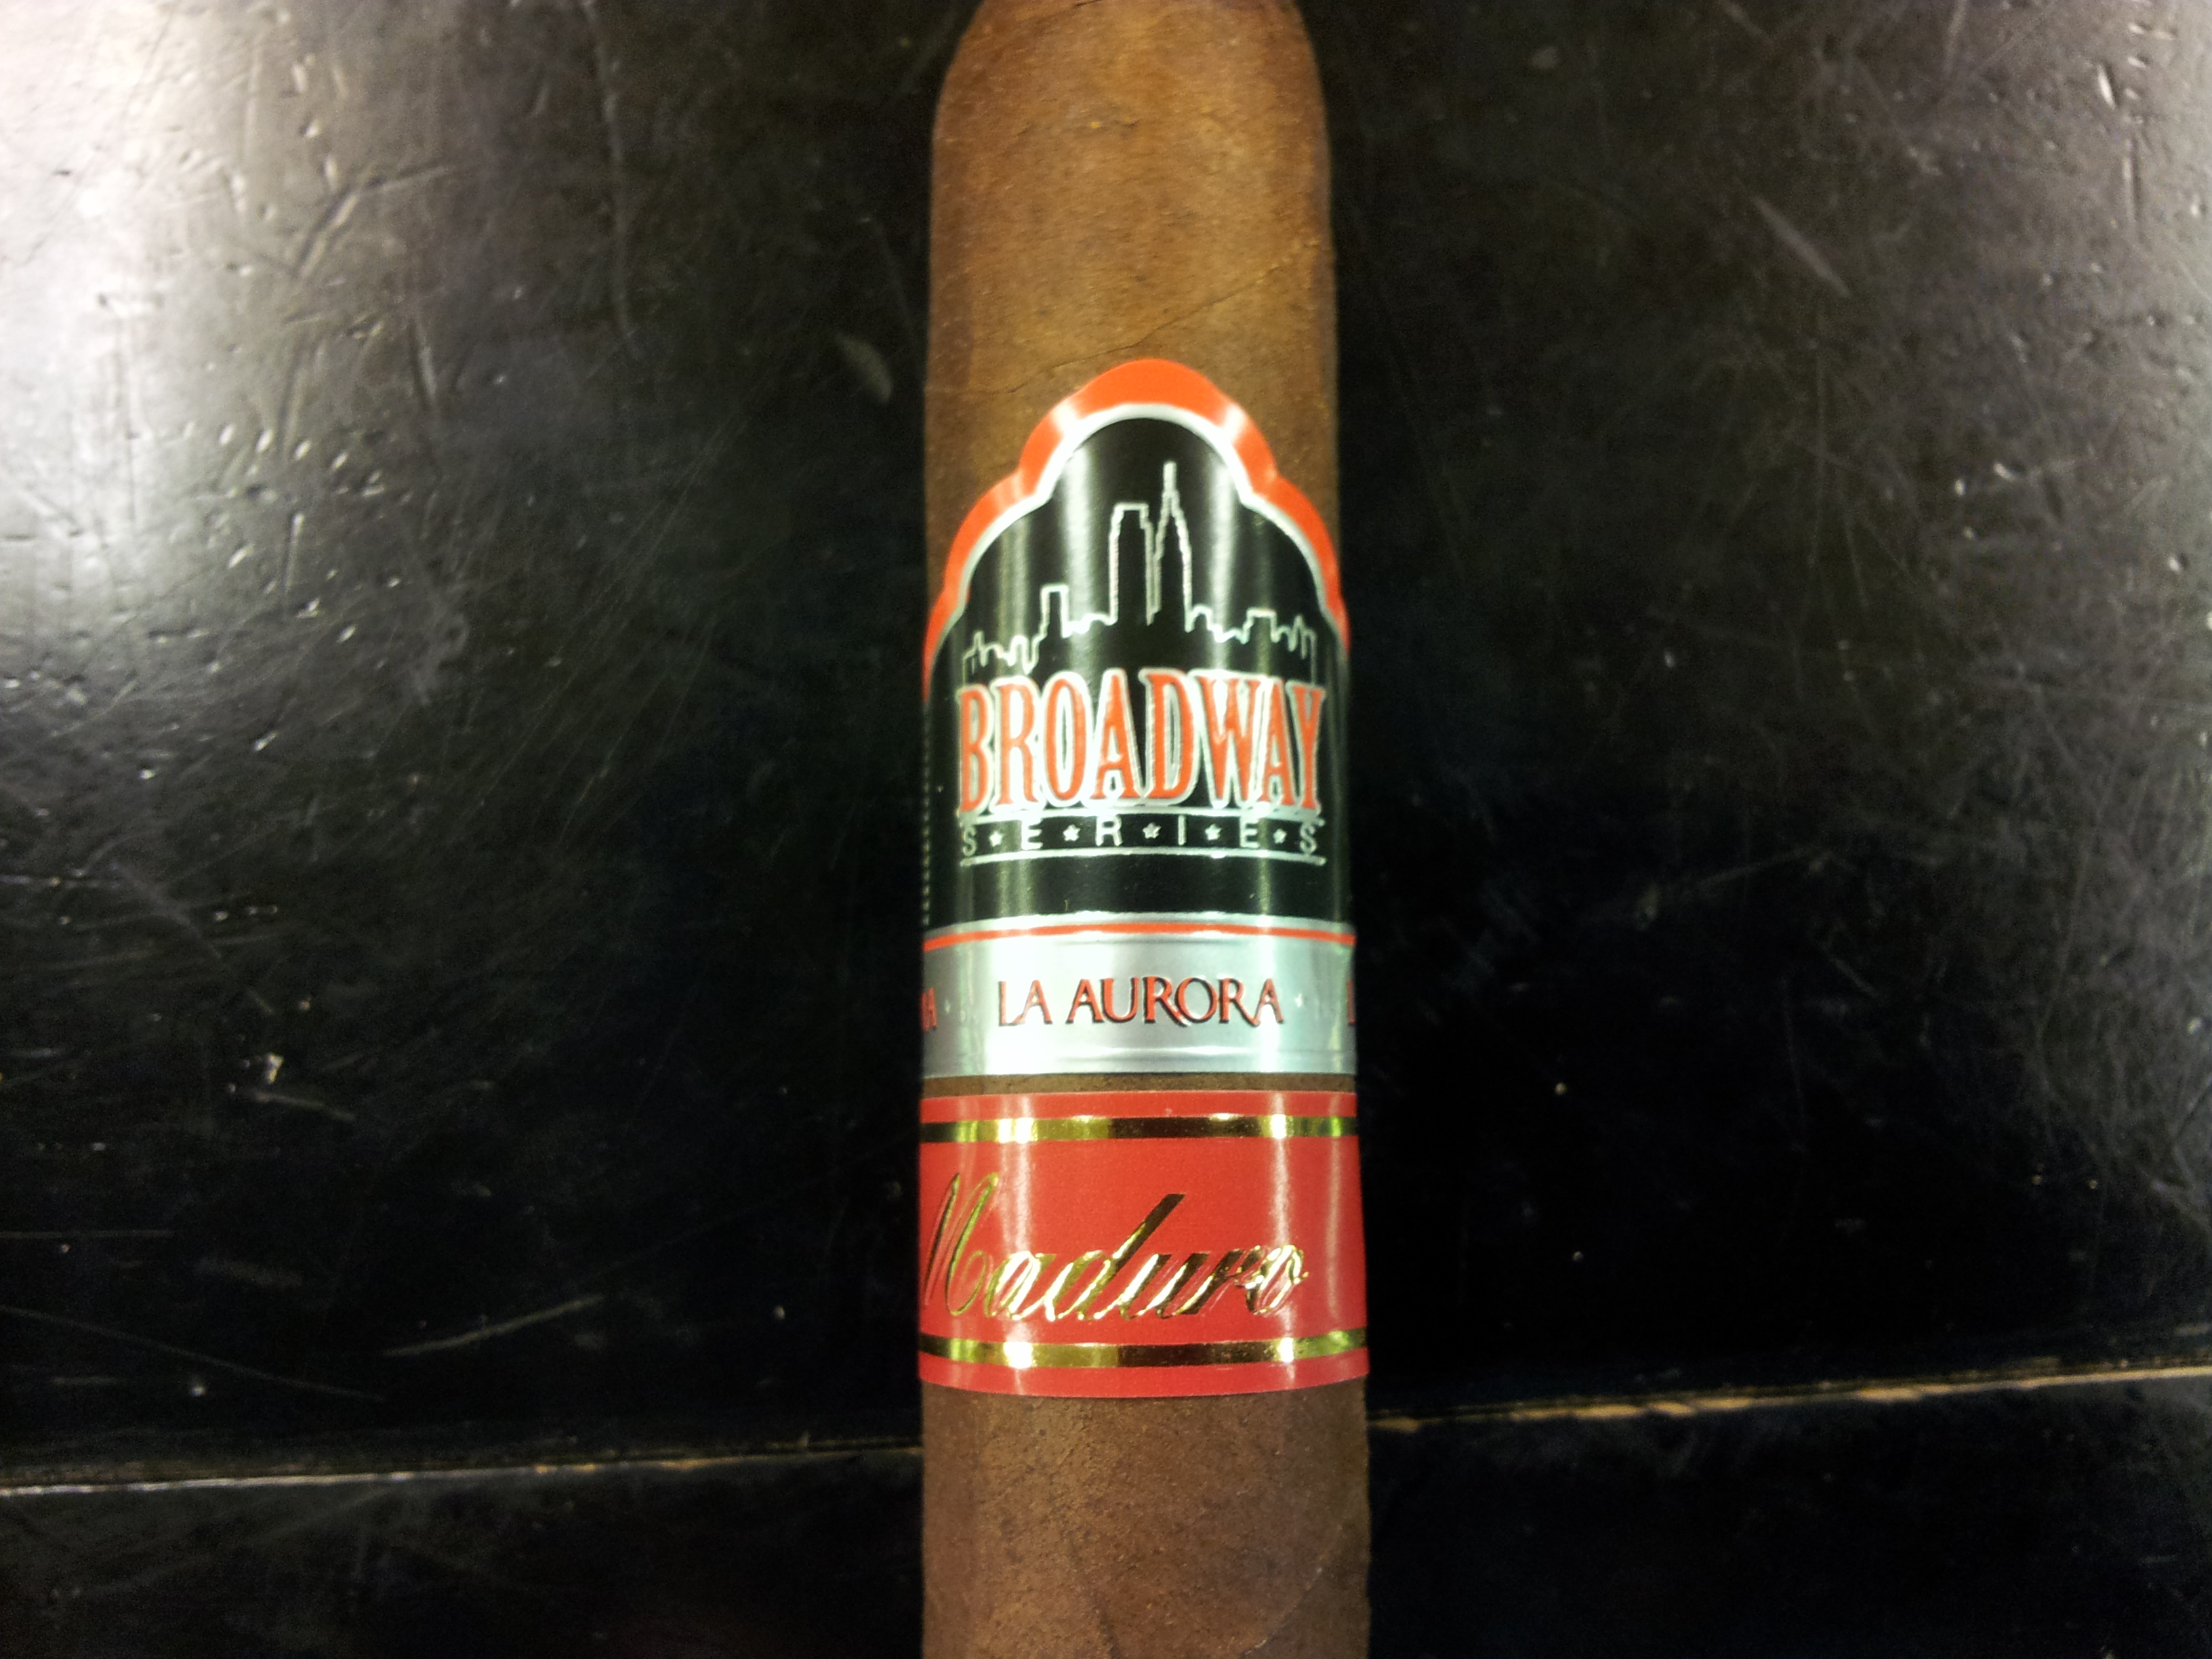 La Aurora Broadway Series Maduro – Cigar Review